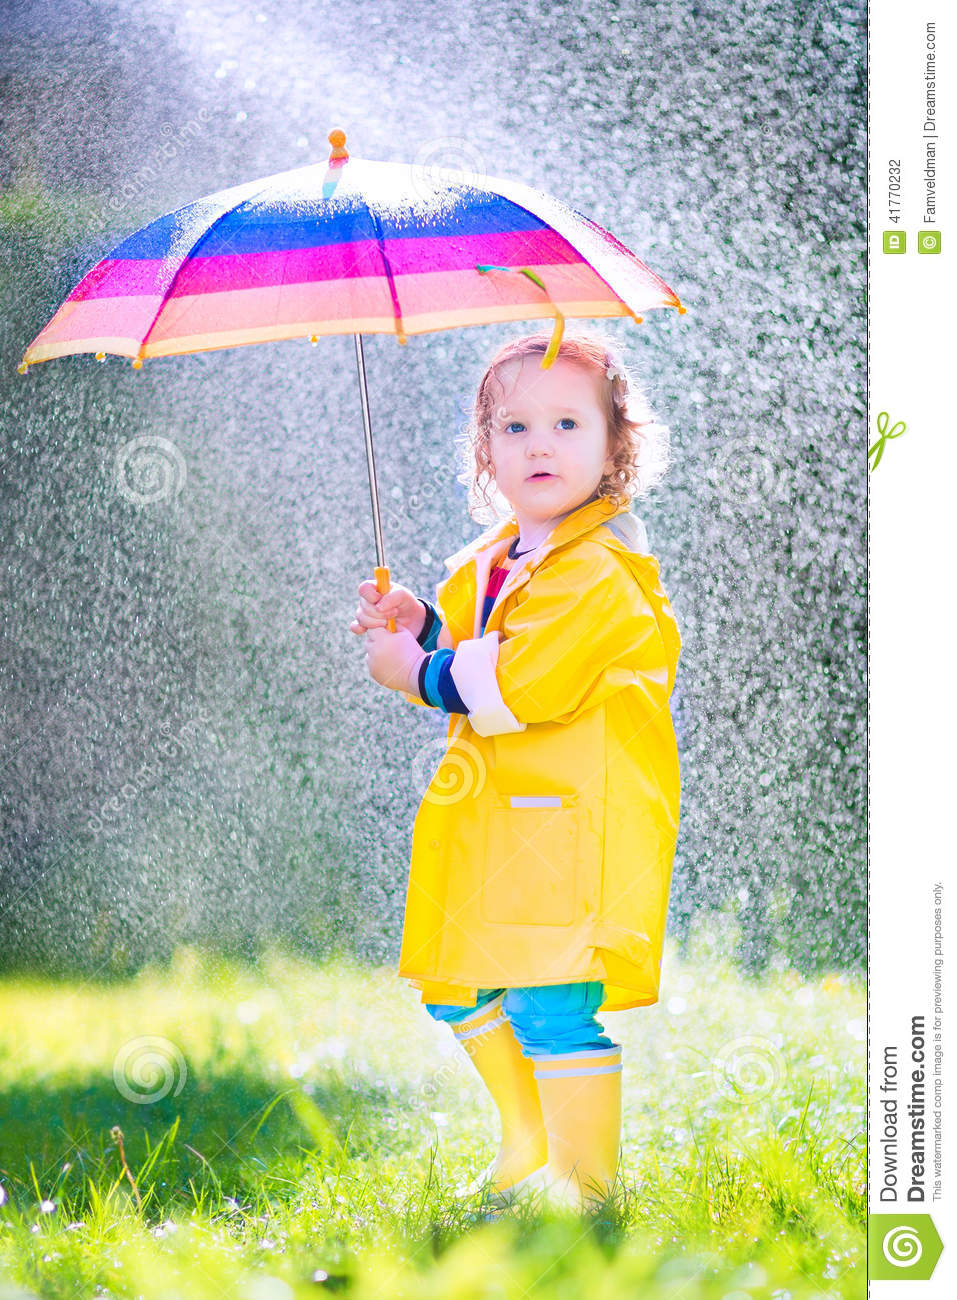 Sweet Toddler With Umbrella Playing In The Rain Stock ...